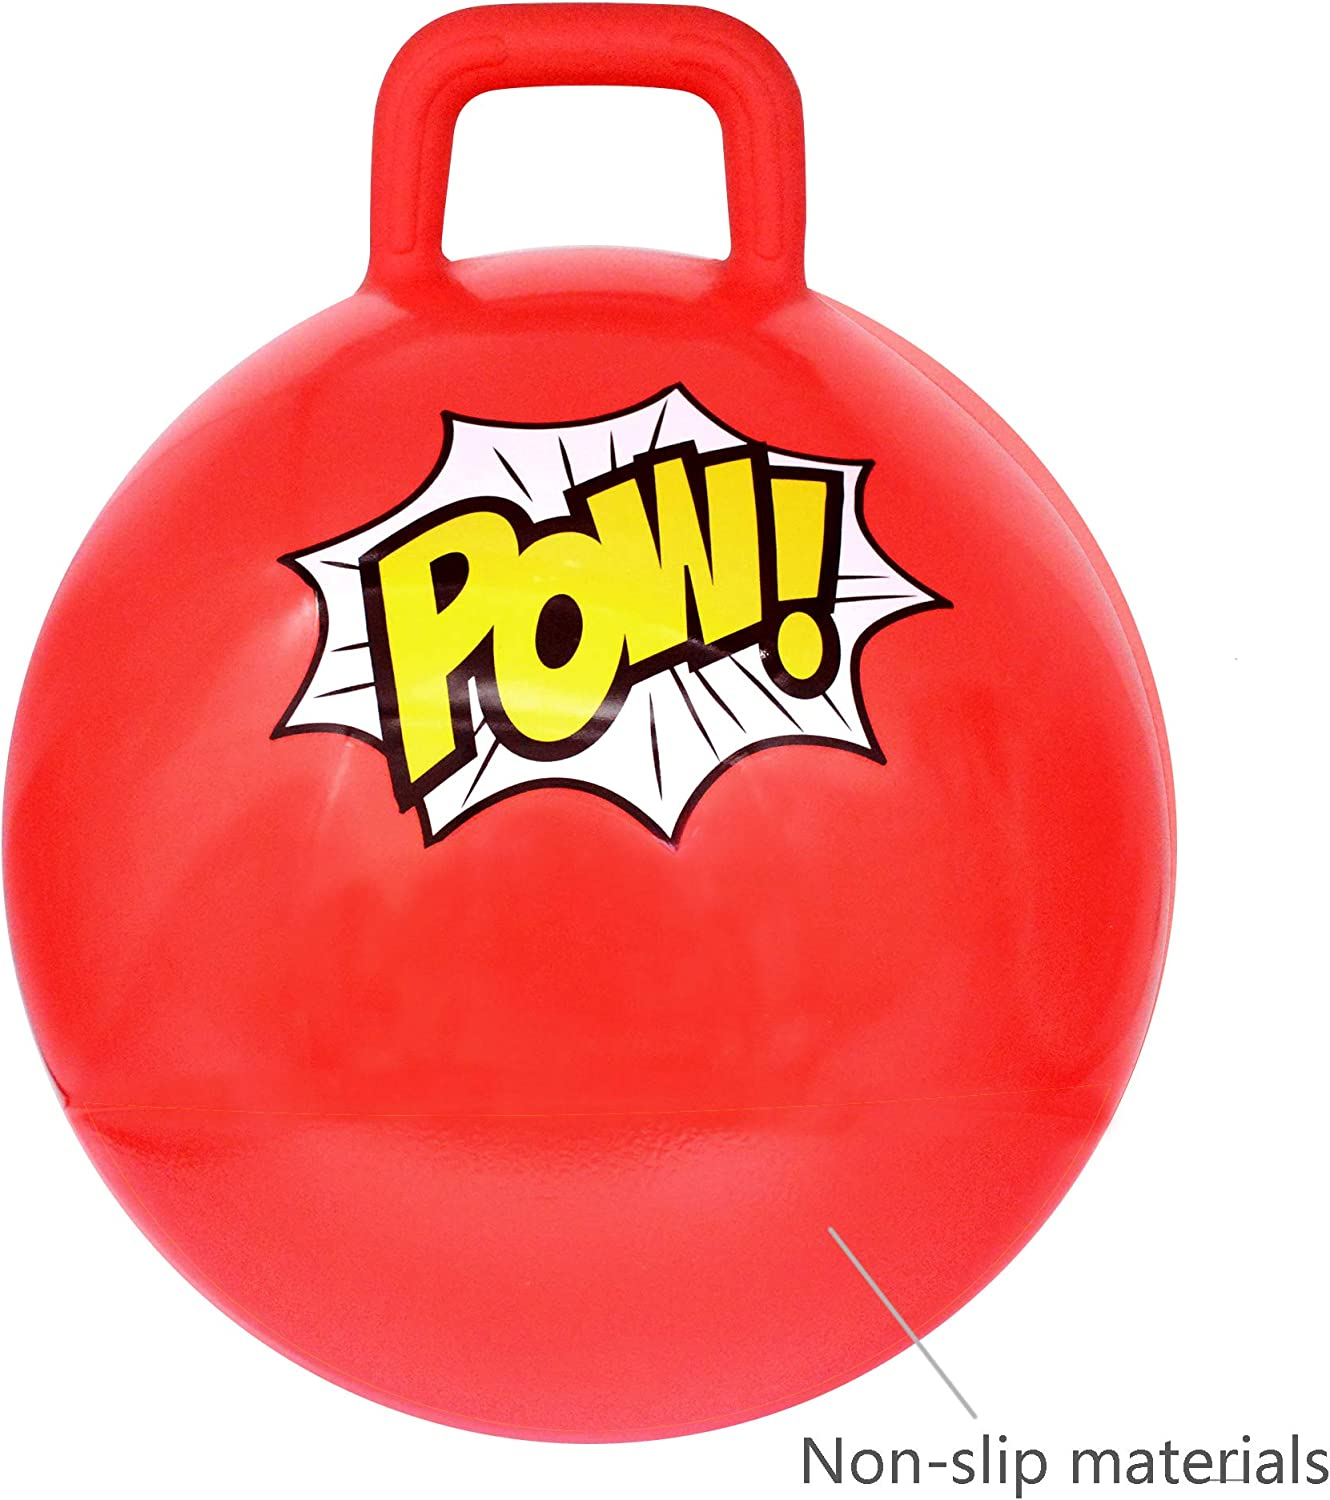 16 Inch Diameter Superhero Pary Gift Red Free Foot Pump Animism Hopping Ball for Kids Jumping Ball with Handle